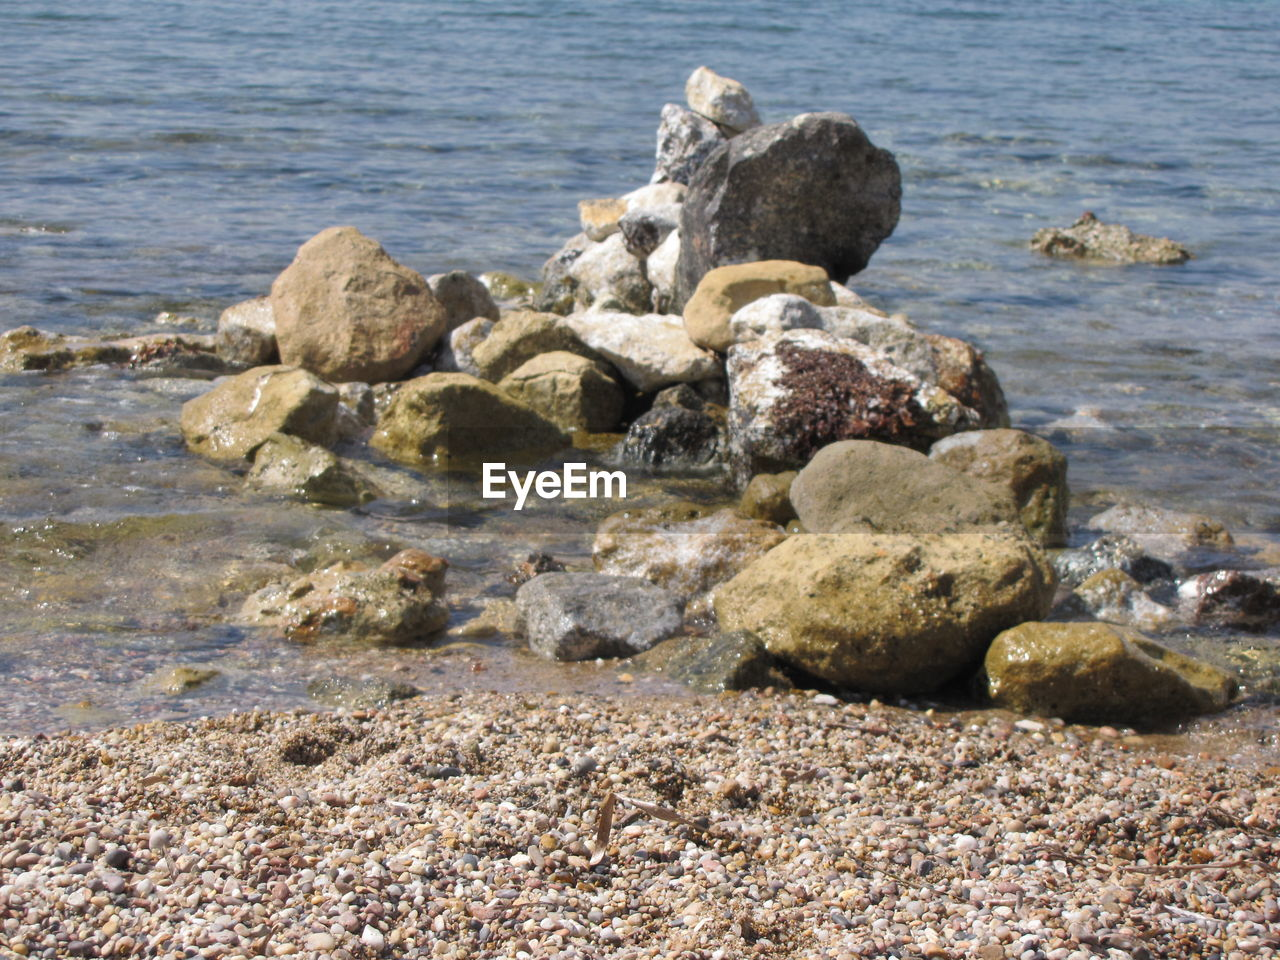 rock - object, sea, beach, water, nature, no people, day, outdoors, beauty in nature, close-up